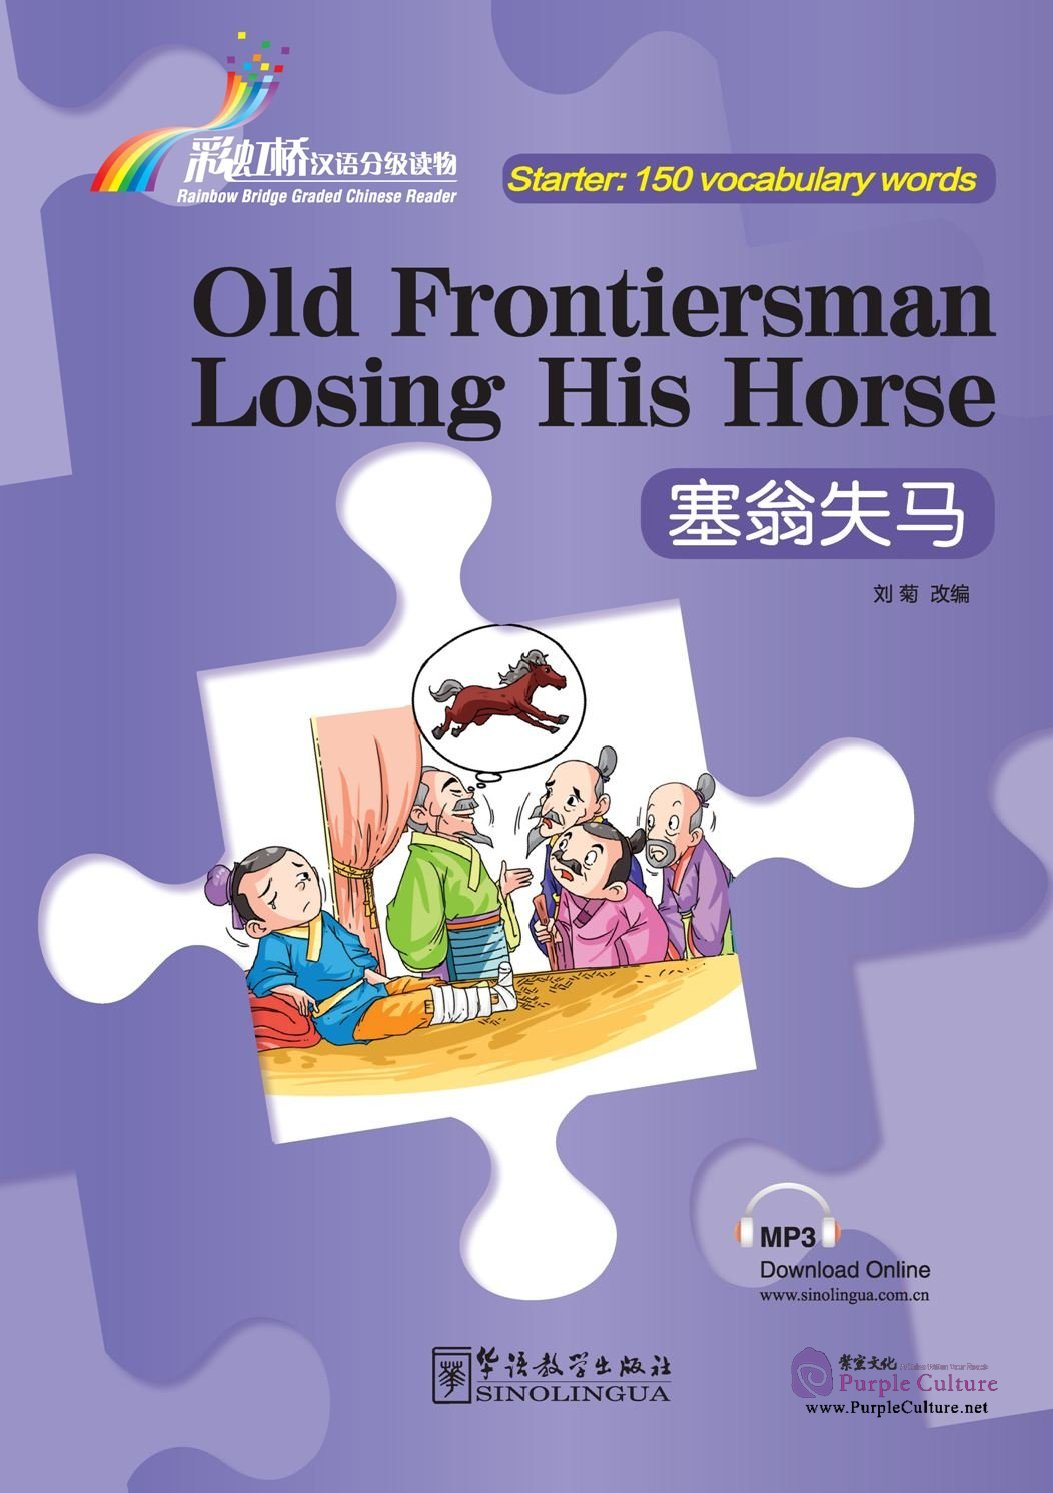 Rainbow Bridge Graded Chinese Reader Starter 150 Vocabulary Words Old Frontiersman Losing His